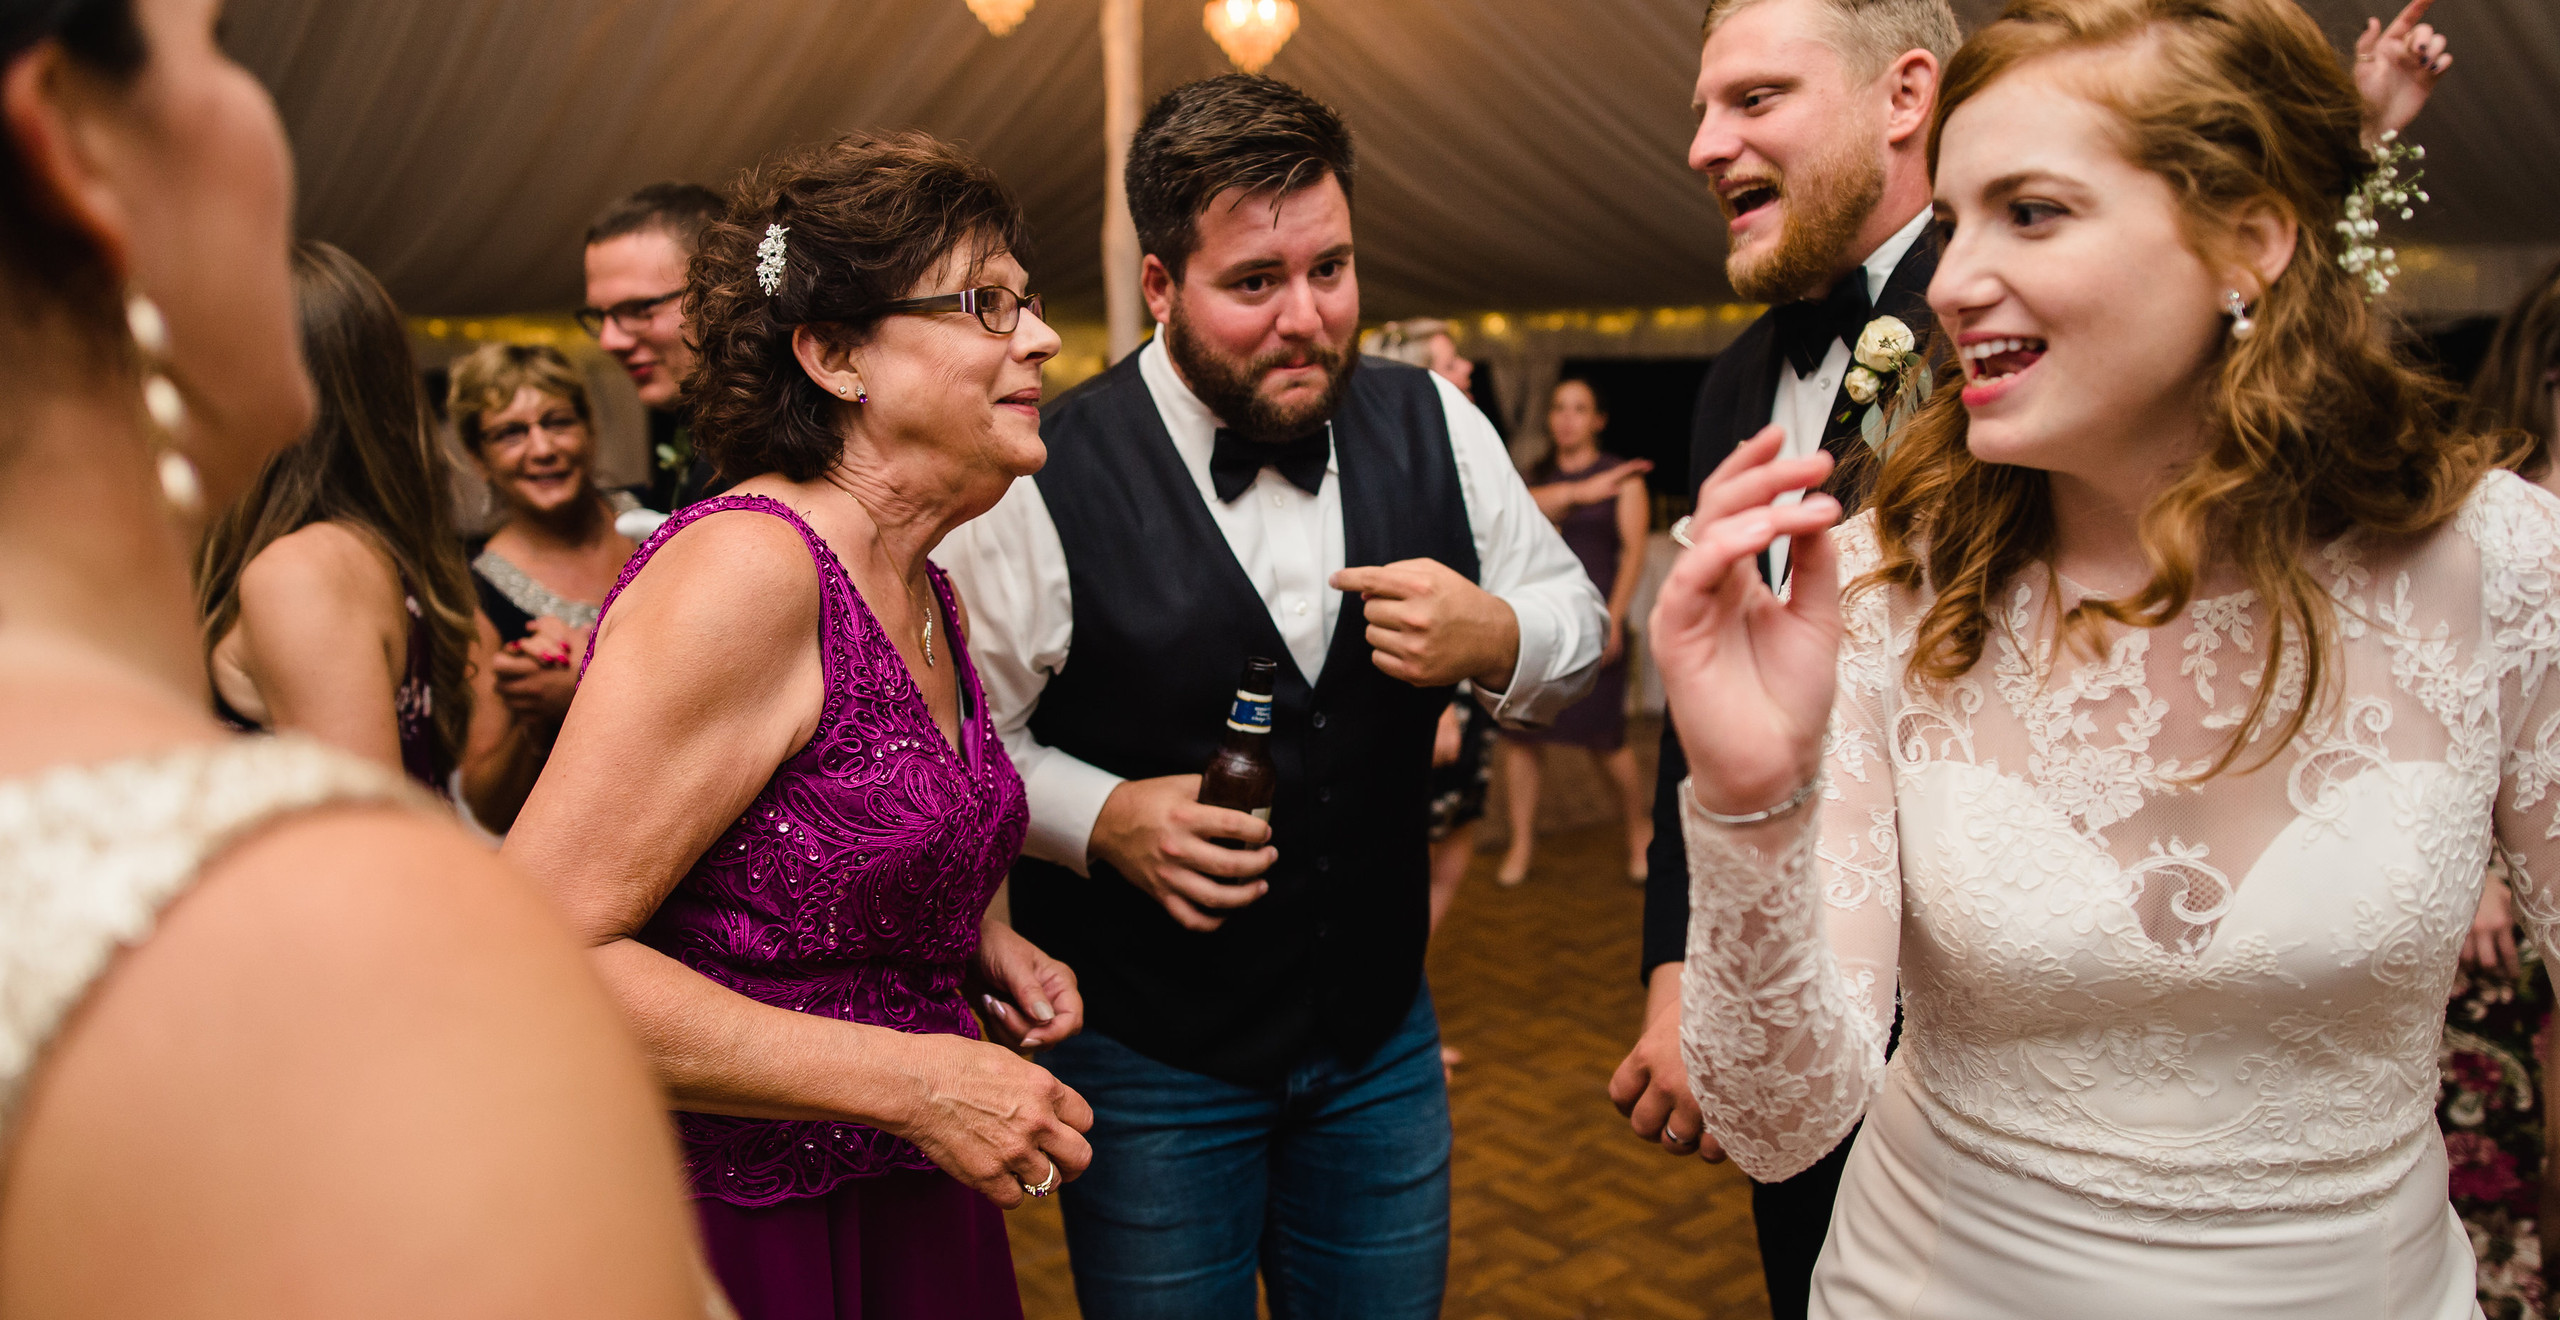 bride and groom dancing with family at wedding